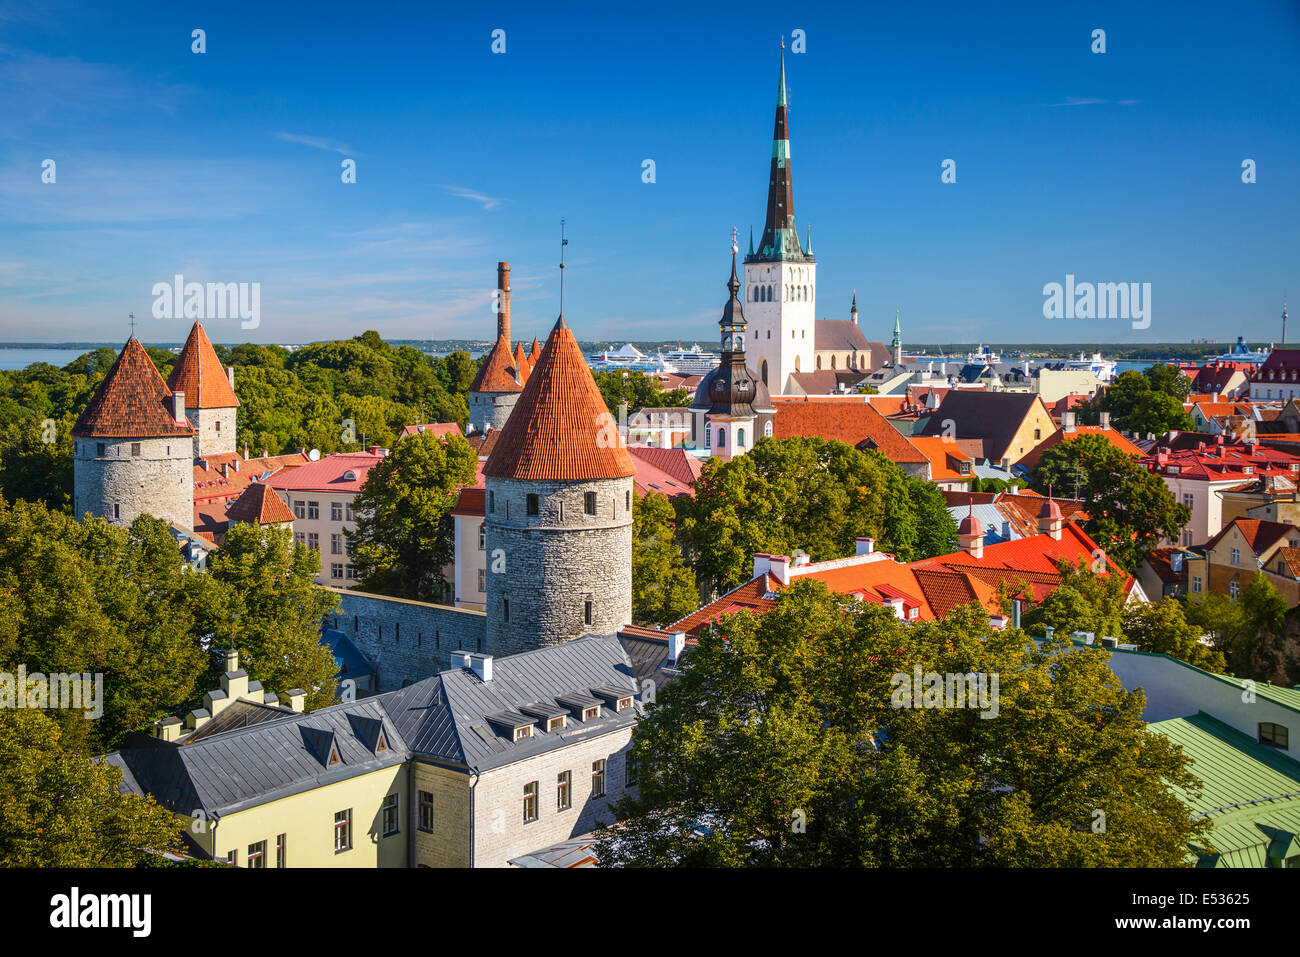 Tallinn, Estonia old city skyline. - Stock Image